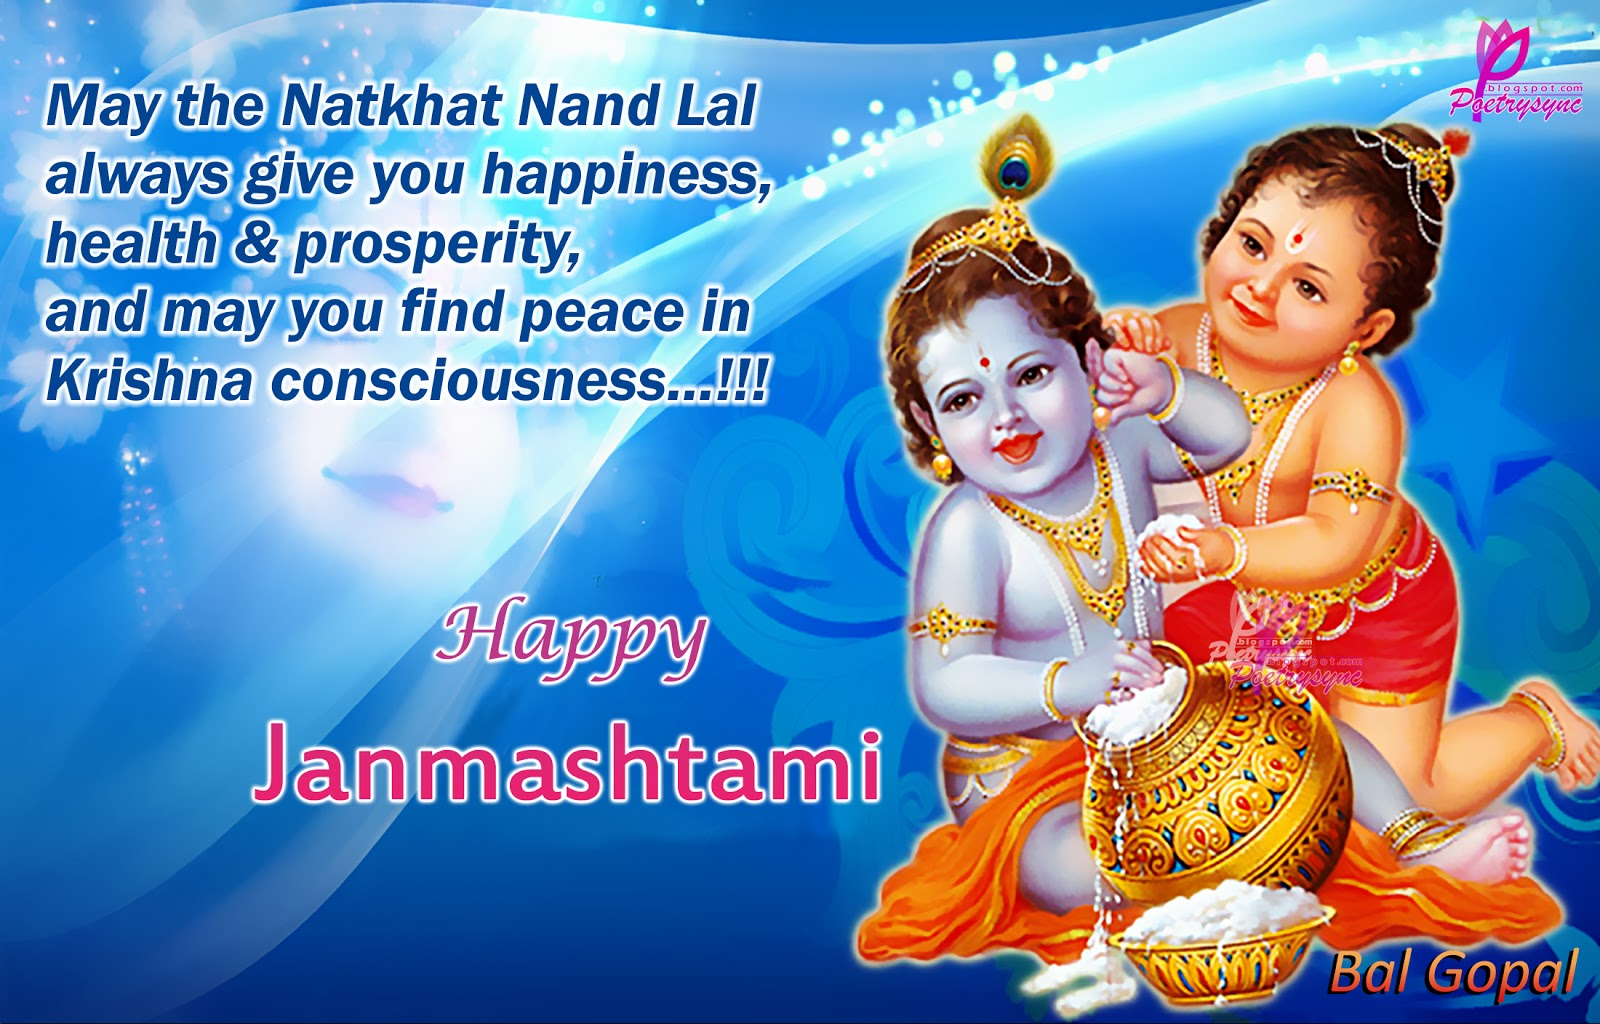 Happy Krishna Janmashtami Greetings Cards Images Photos Pic In English